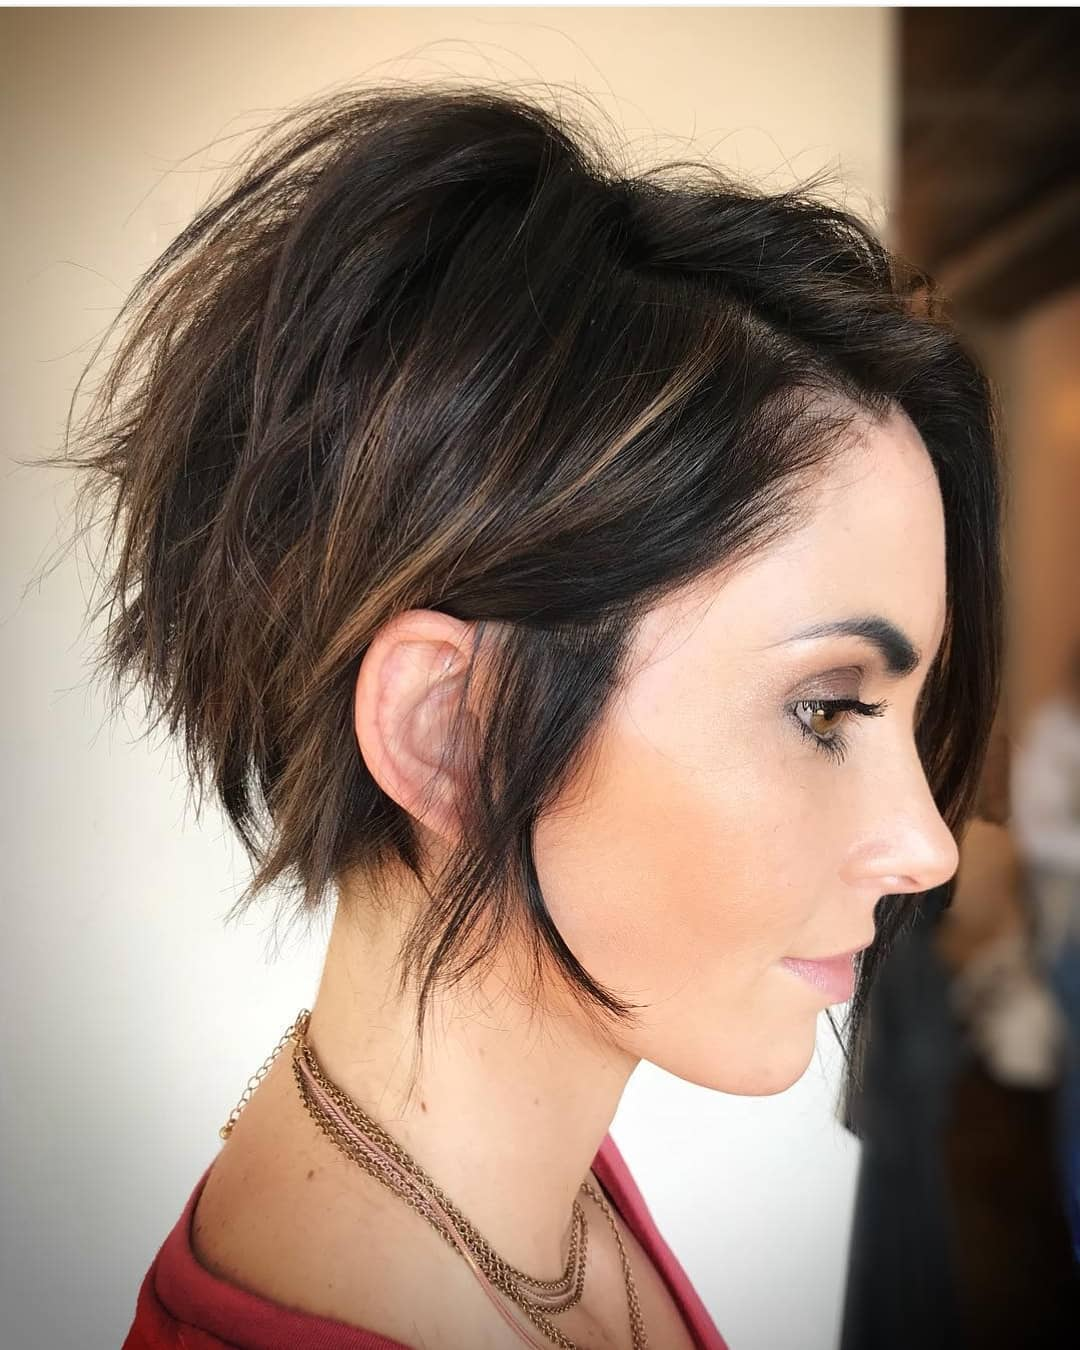 10 Pixie Haircut Inspiration Latest Short Hair Styles For Women 2020